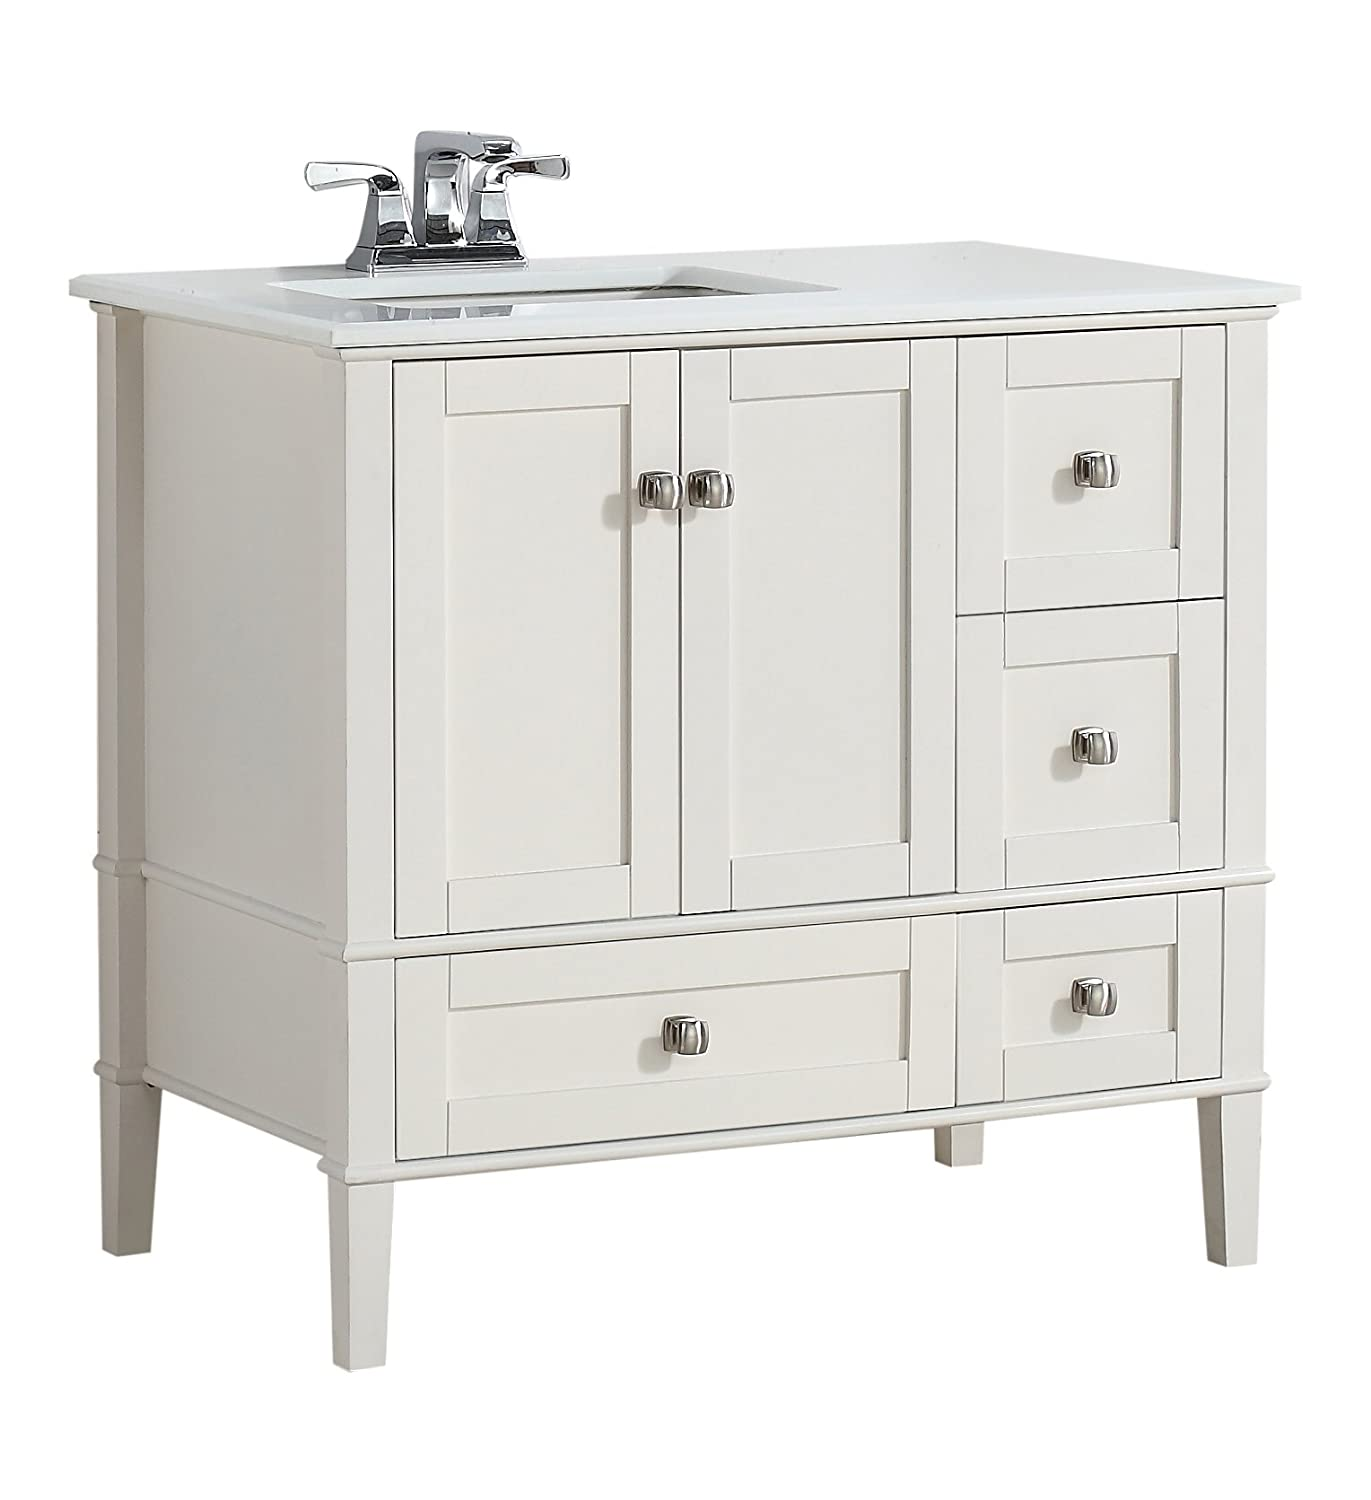 inch vanity storage lowes bathroom in floor of white cabinet cabinets with single lovely shaker sink